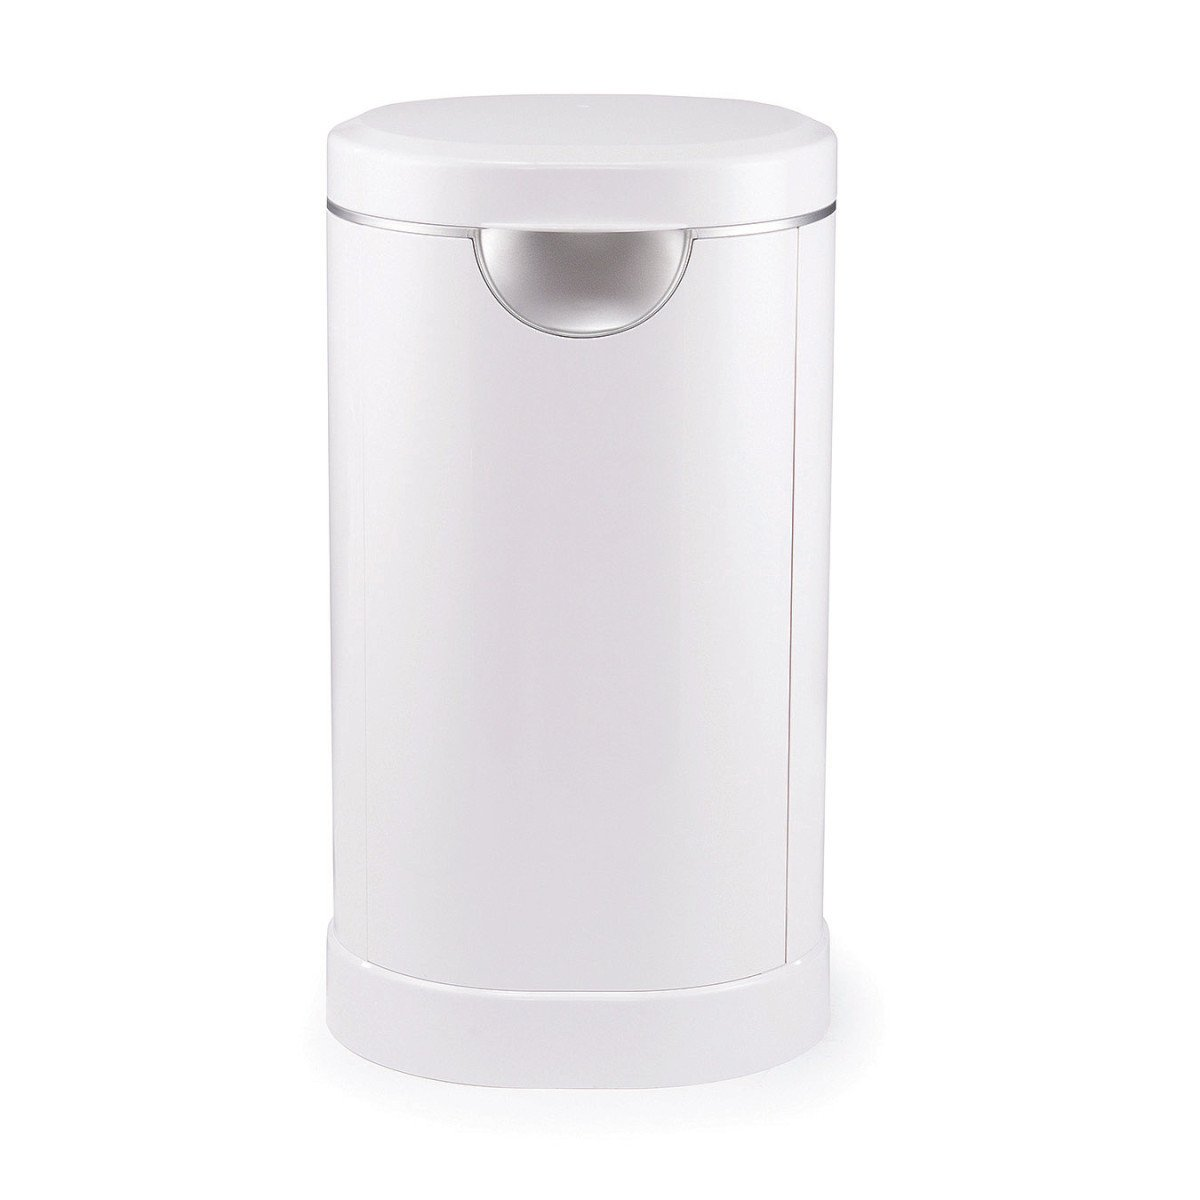 Munchkin 15900  Diaper PAIL Powered by Arm & Hammer